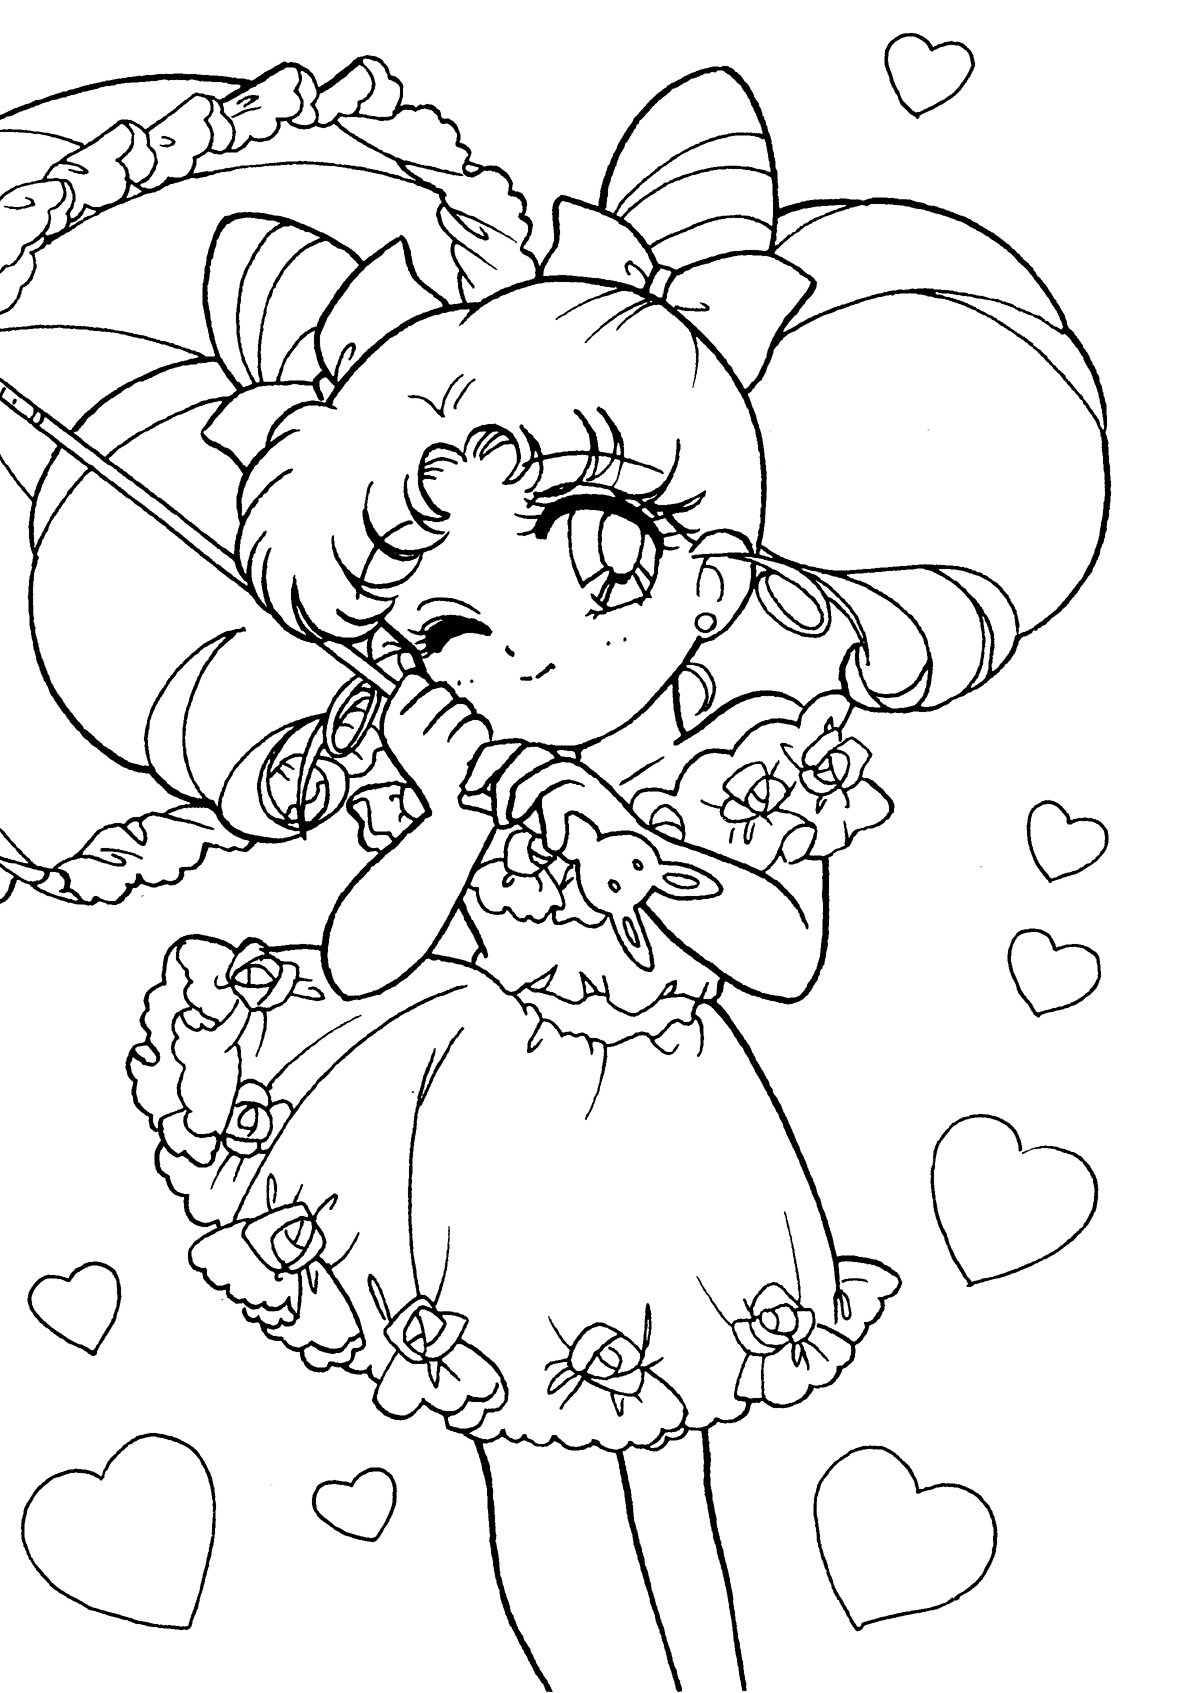 Sailor Moon Drawing Book At Getdrawings Com Free For Personal Use